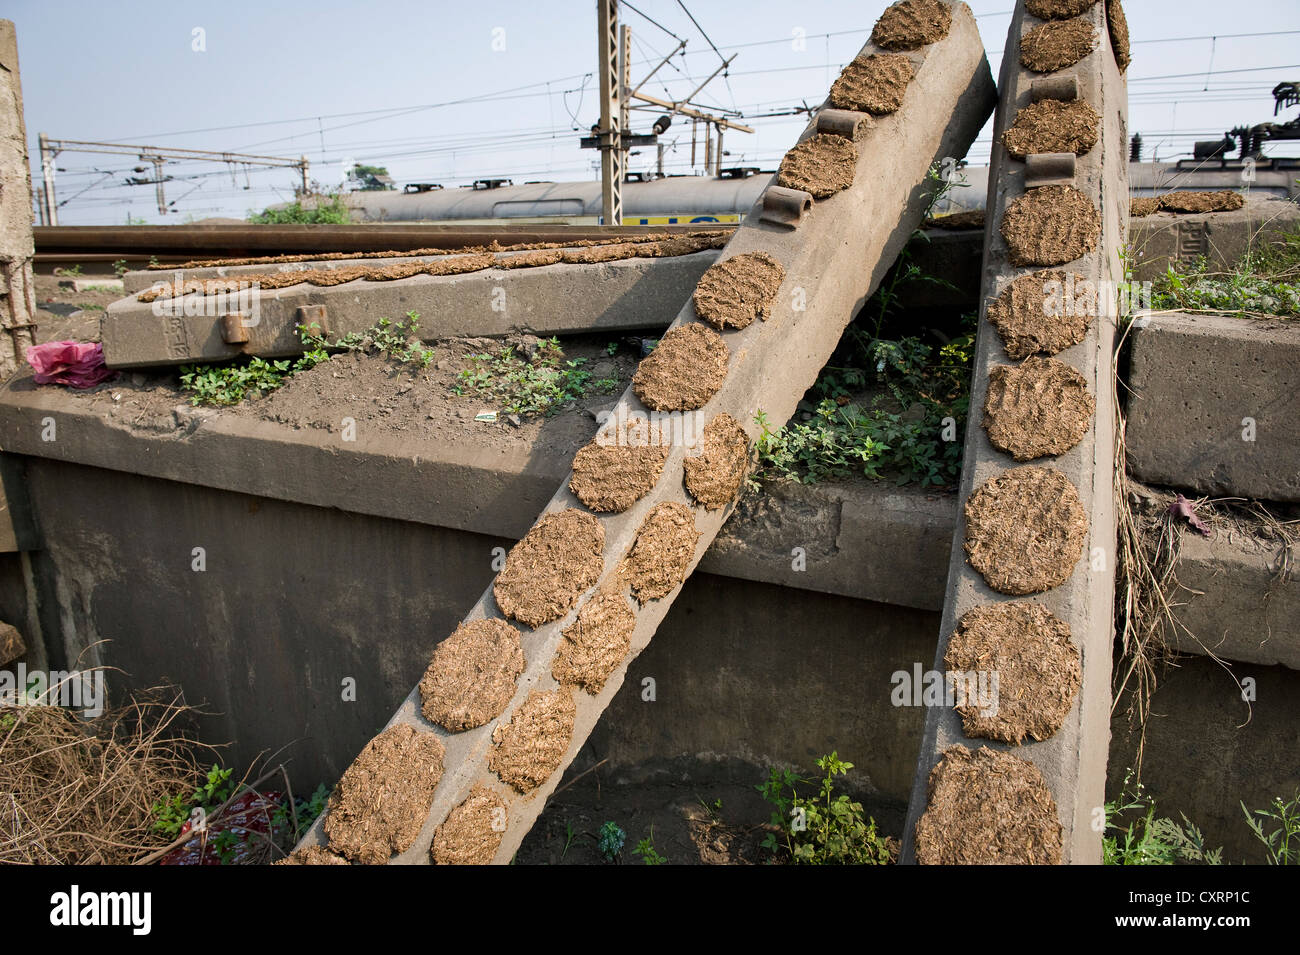 Cow dung is being dried on railway sleepers to be used as fuel, Shibpur district, Haora or Howrah, Calcutta, , India, - Stock Image